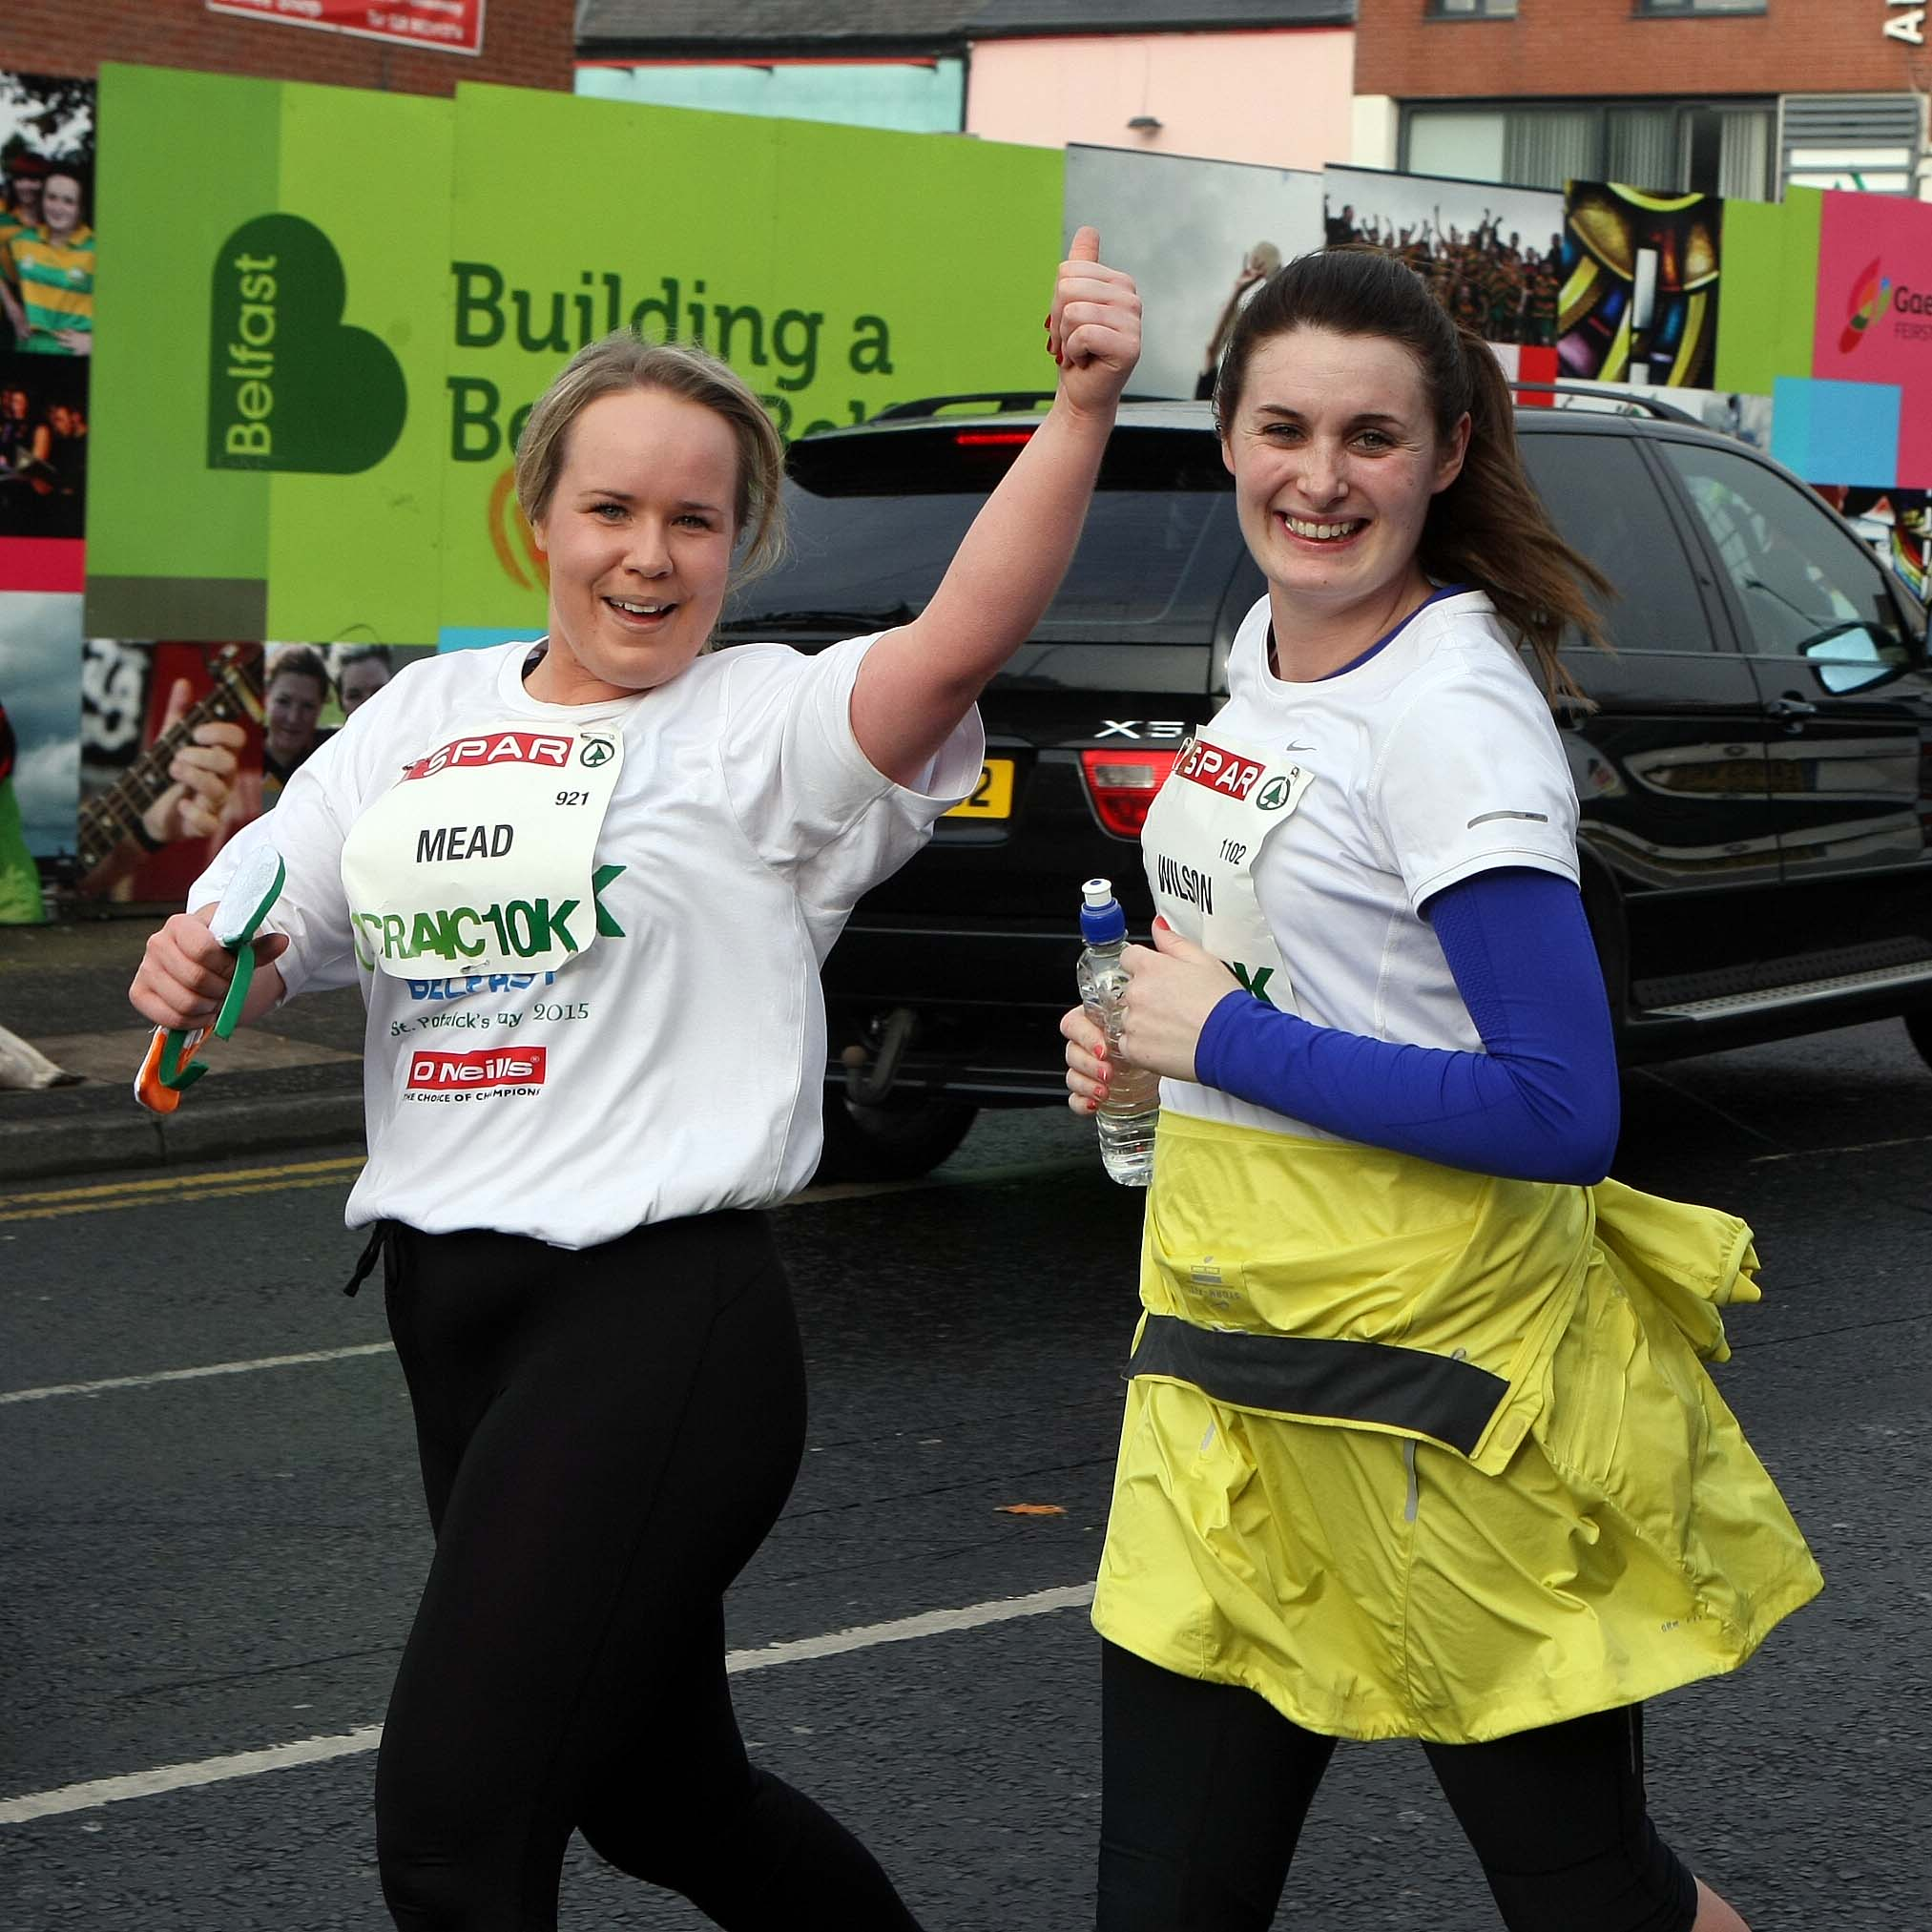 Tuesday 17-3-2015St Patrick's DaySPAR Craic 10k BelfastSmiles all the waySparCraic10K170315FP026